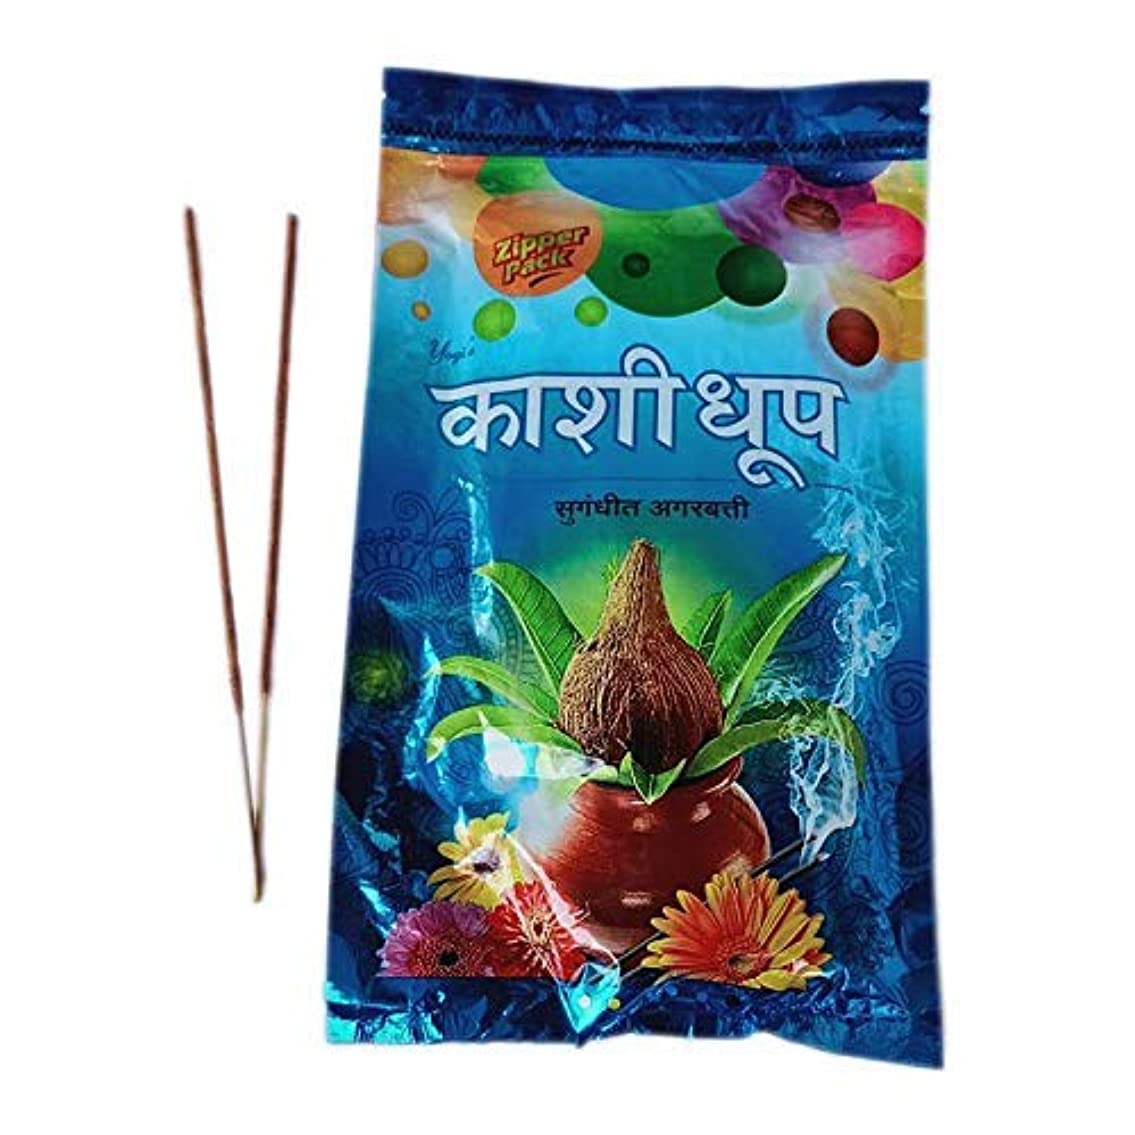 ひまわり機関カレッジYOGI Kashi Dhoop Incense Sticks/Agarbatti Zipper Pack (180 GM) Pack of 3